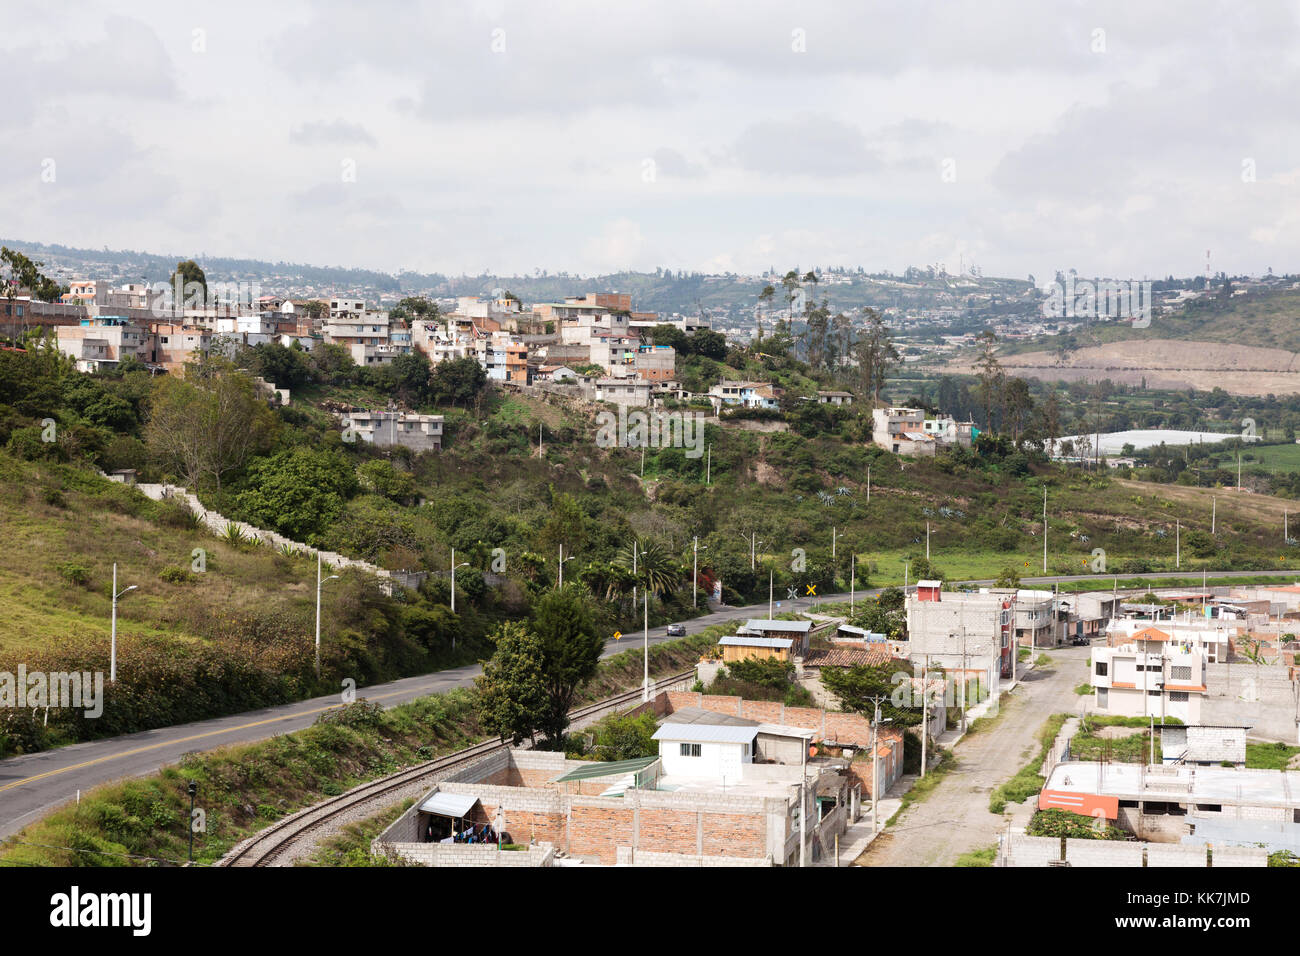 The town of Ibarra, Northern Ecuador, South America - Stock Image